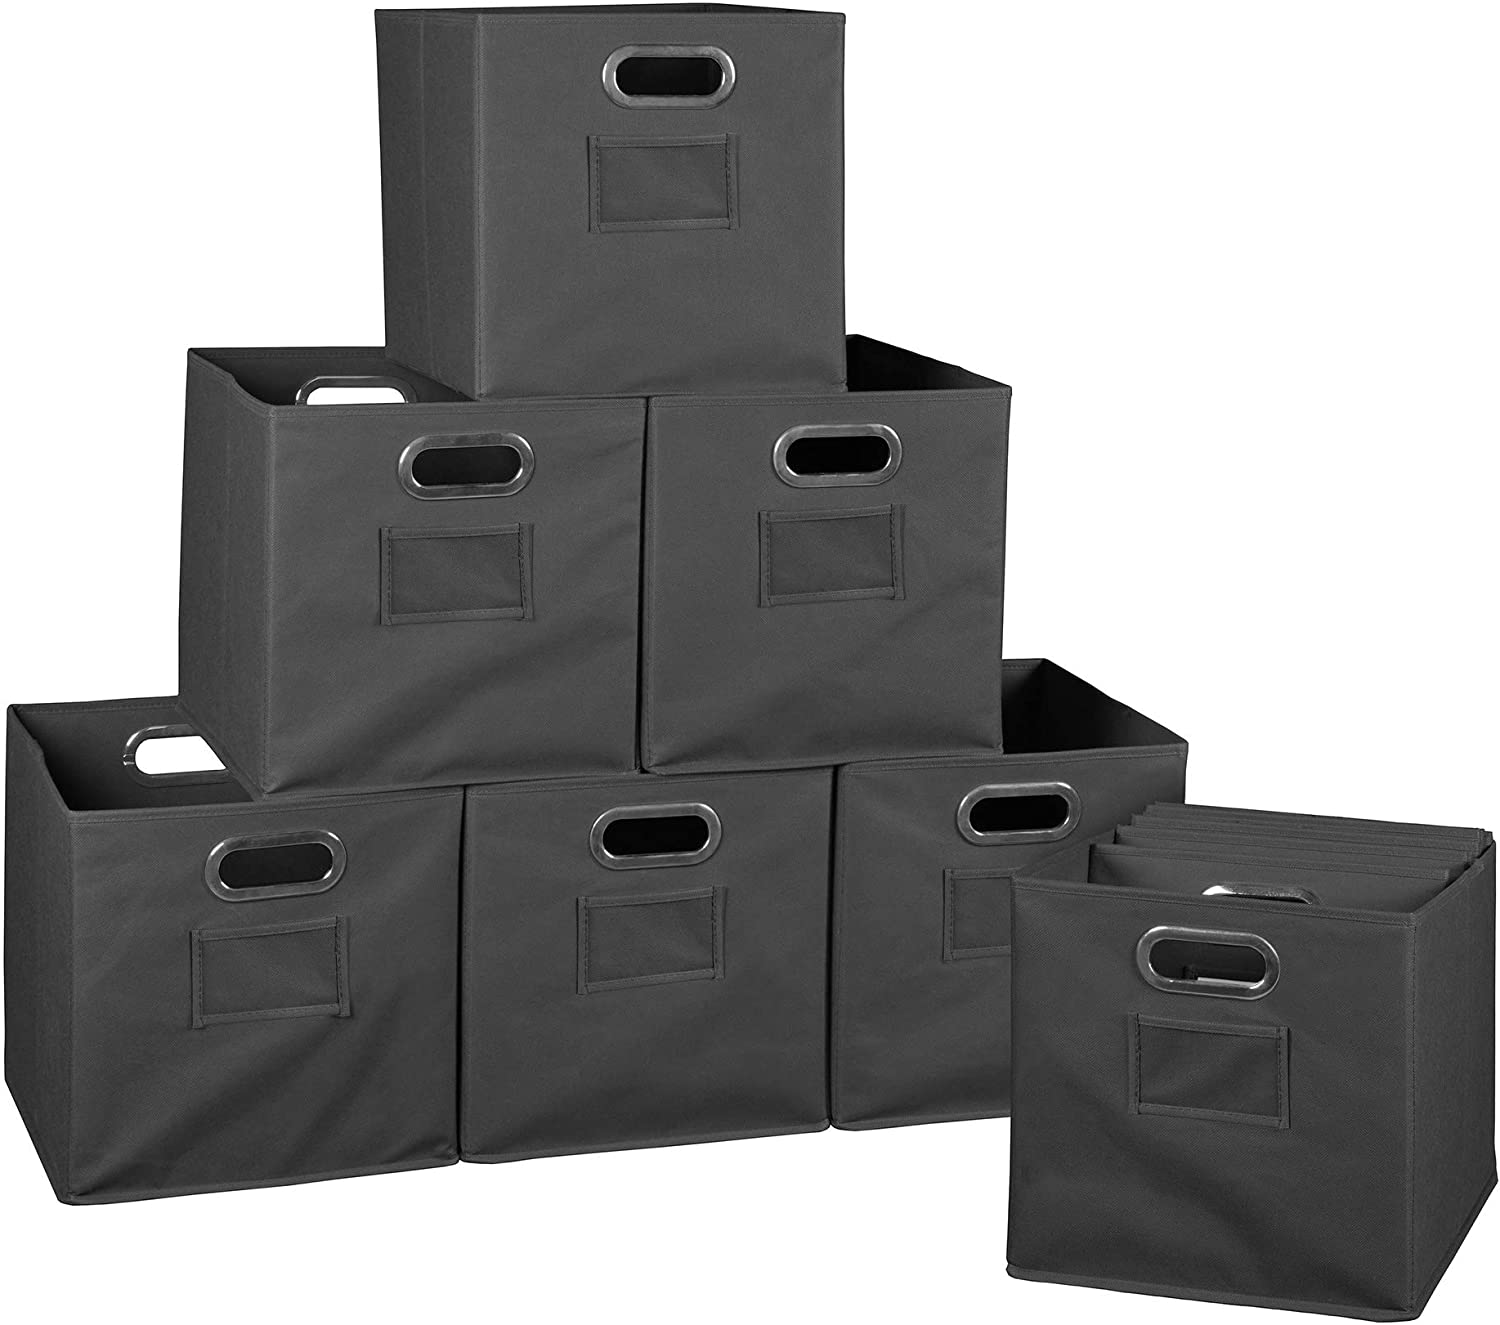 Unknown1 Connect Set of 12 Challenge the lowest price Foldable Storage Grey Mo depot Fabric Bins-